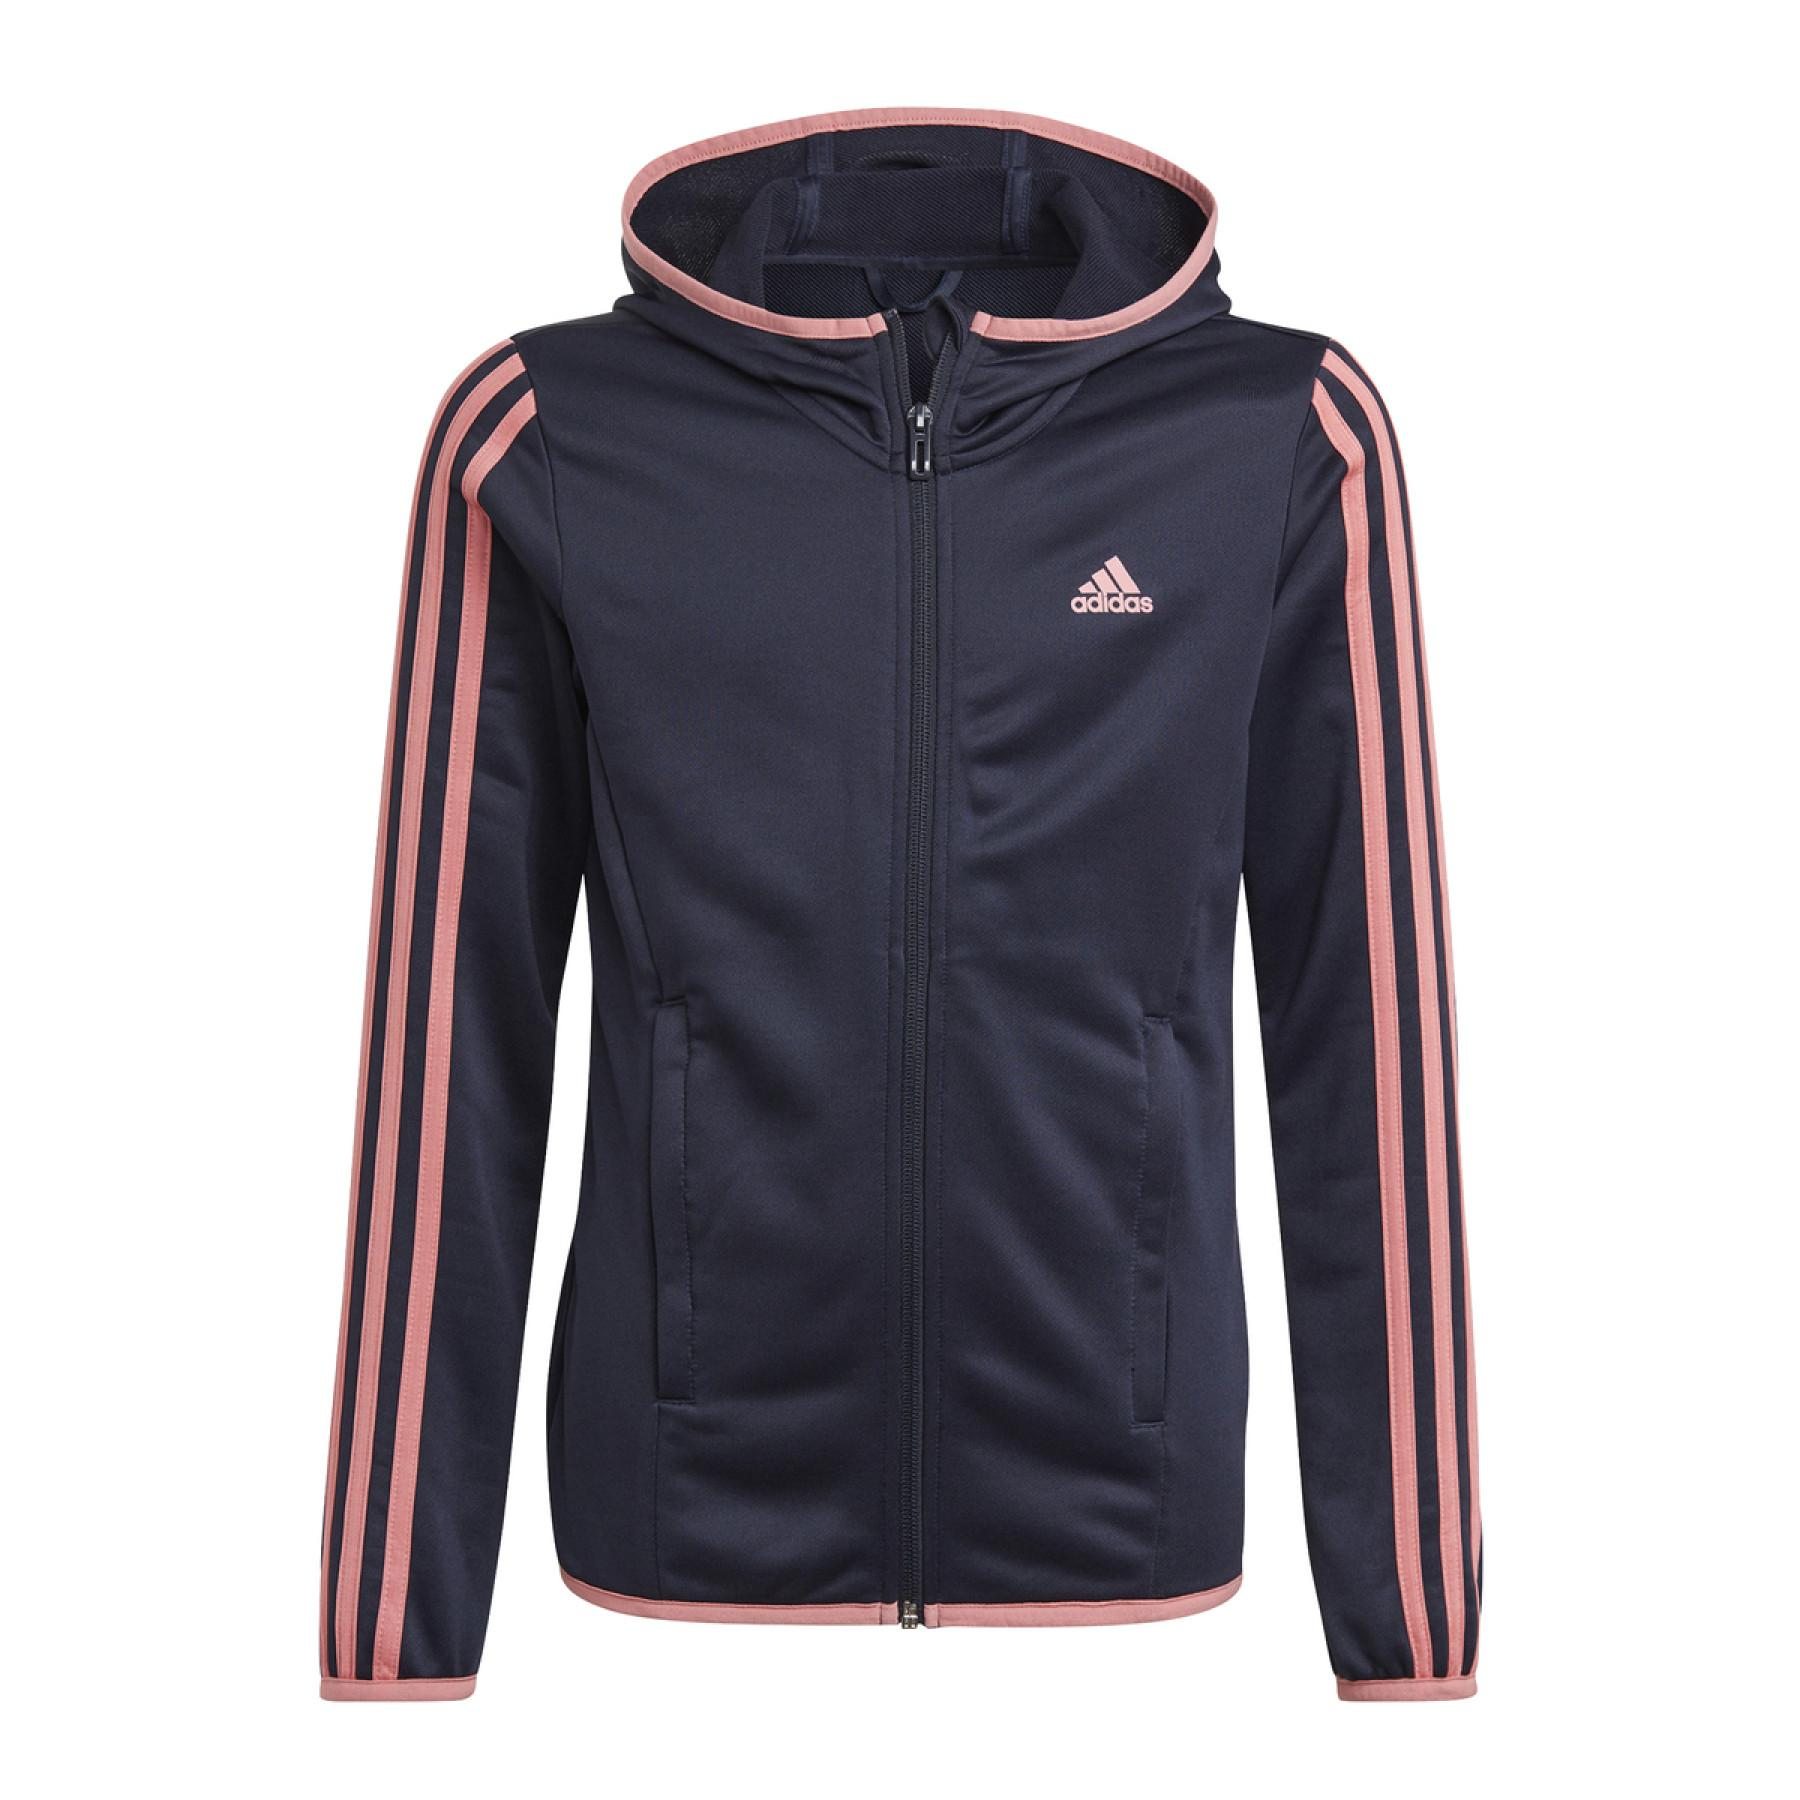 adidas Designed To Move 3-Stripes Children's Zip Up Hoody